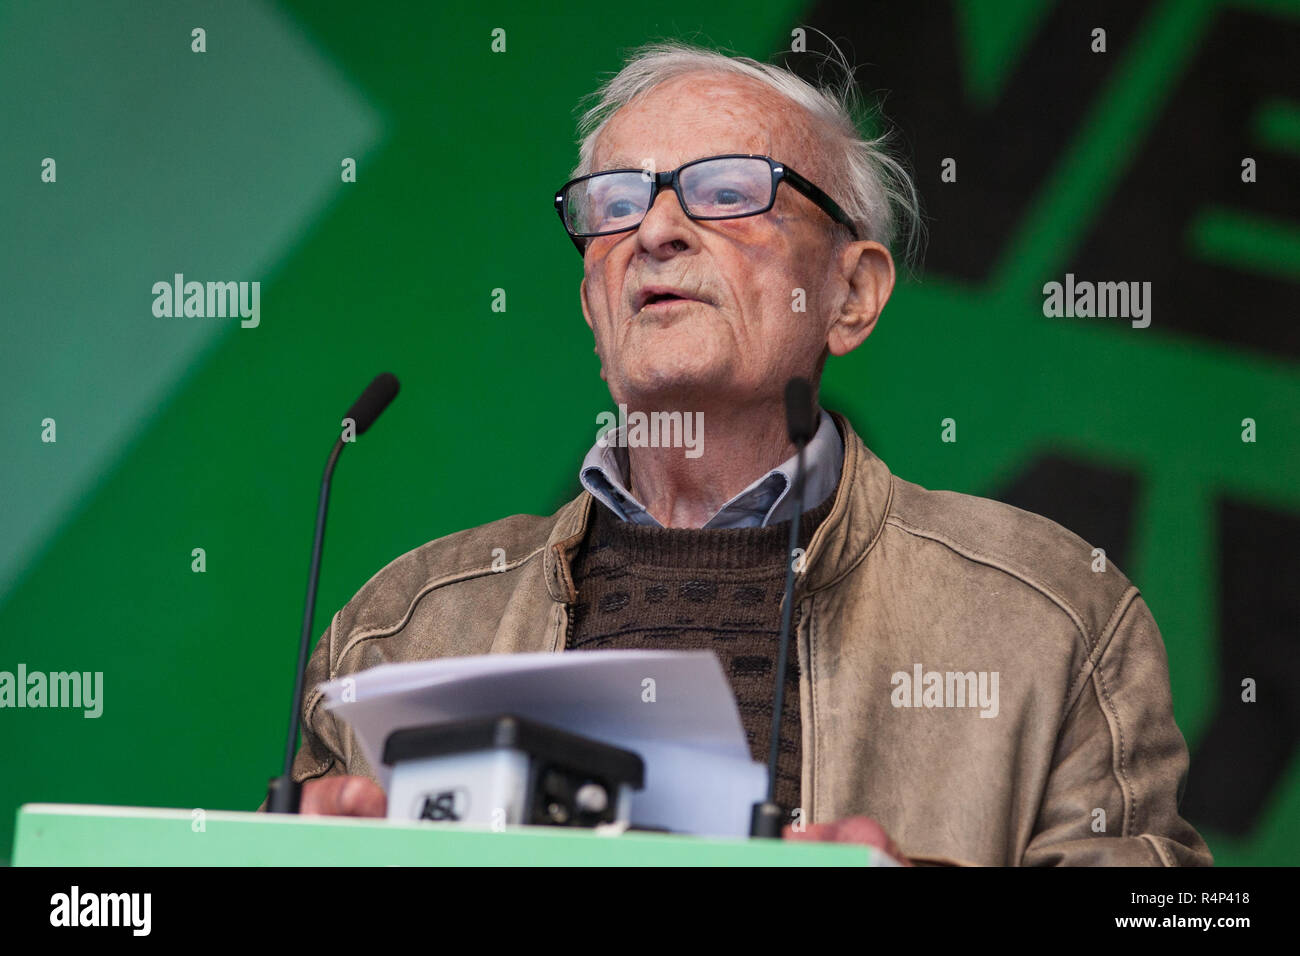 FILE IMAGE: Harry Leslie Smith has passed away today. File image from London, UK. 18th October, 2014. Harry Leslie Smith, a 91-year-old war veteran who lived through the Great Depression, addresses 100,000 people at the TUC's 'Britain Needs A Pay Rise' rally. Credit: Mark Kerrison/Alamy Live News - Stock Image